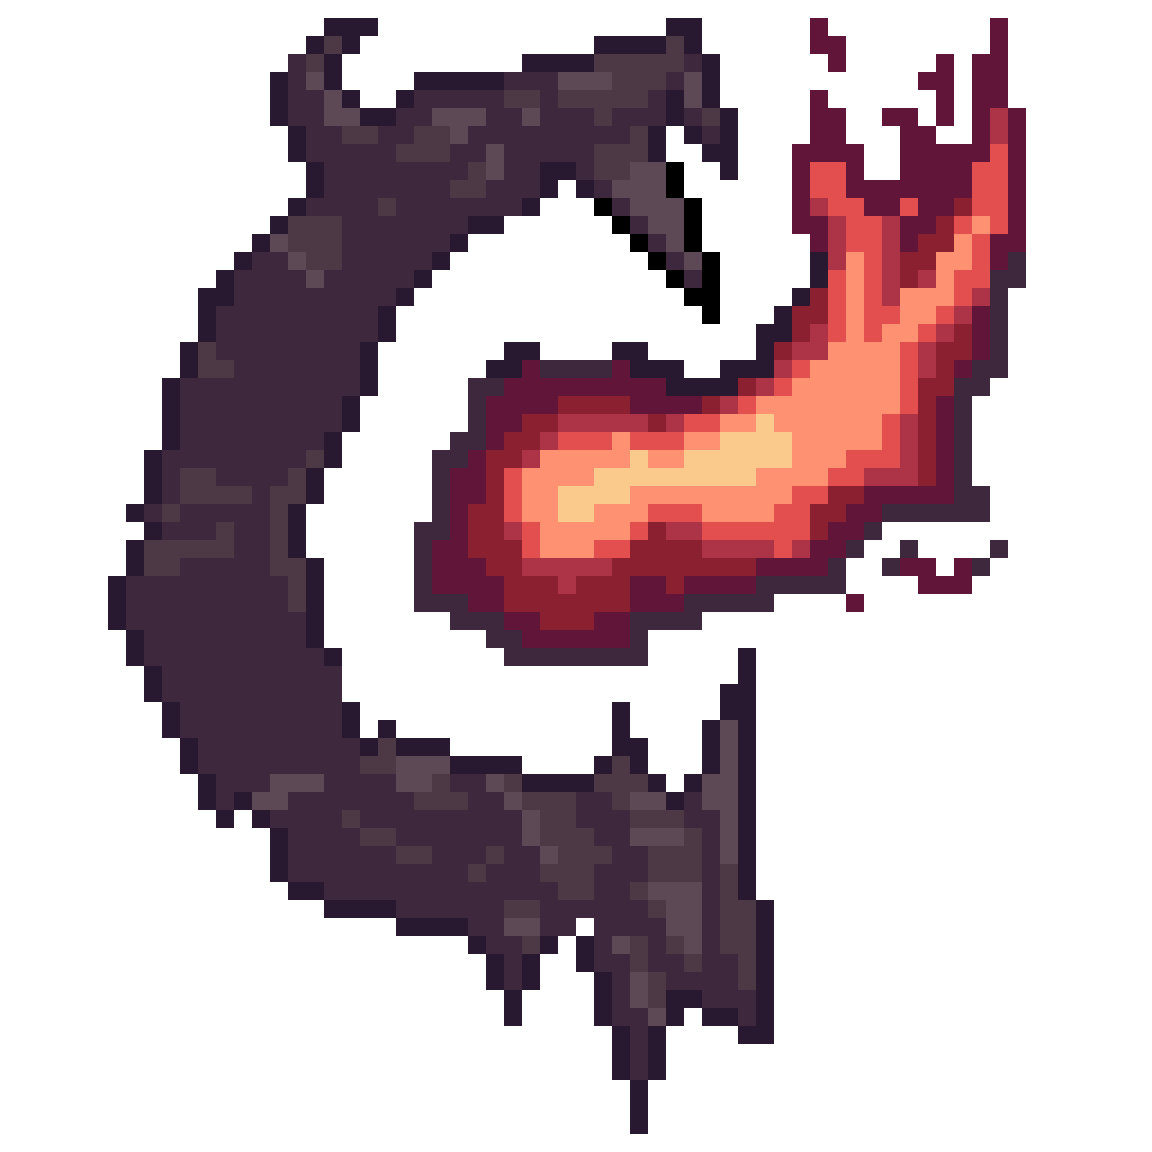 Pixilart - Calamity Mod Icon by Dr-Jred-X